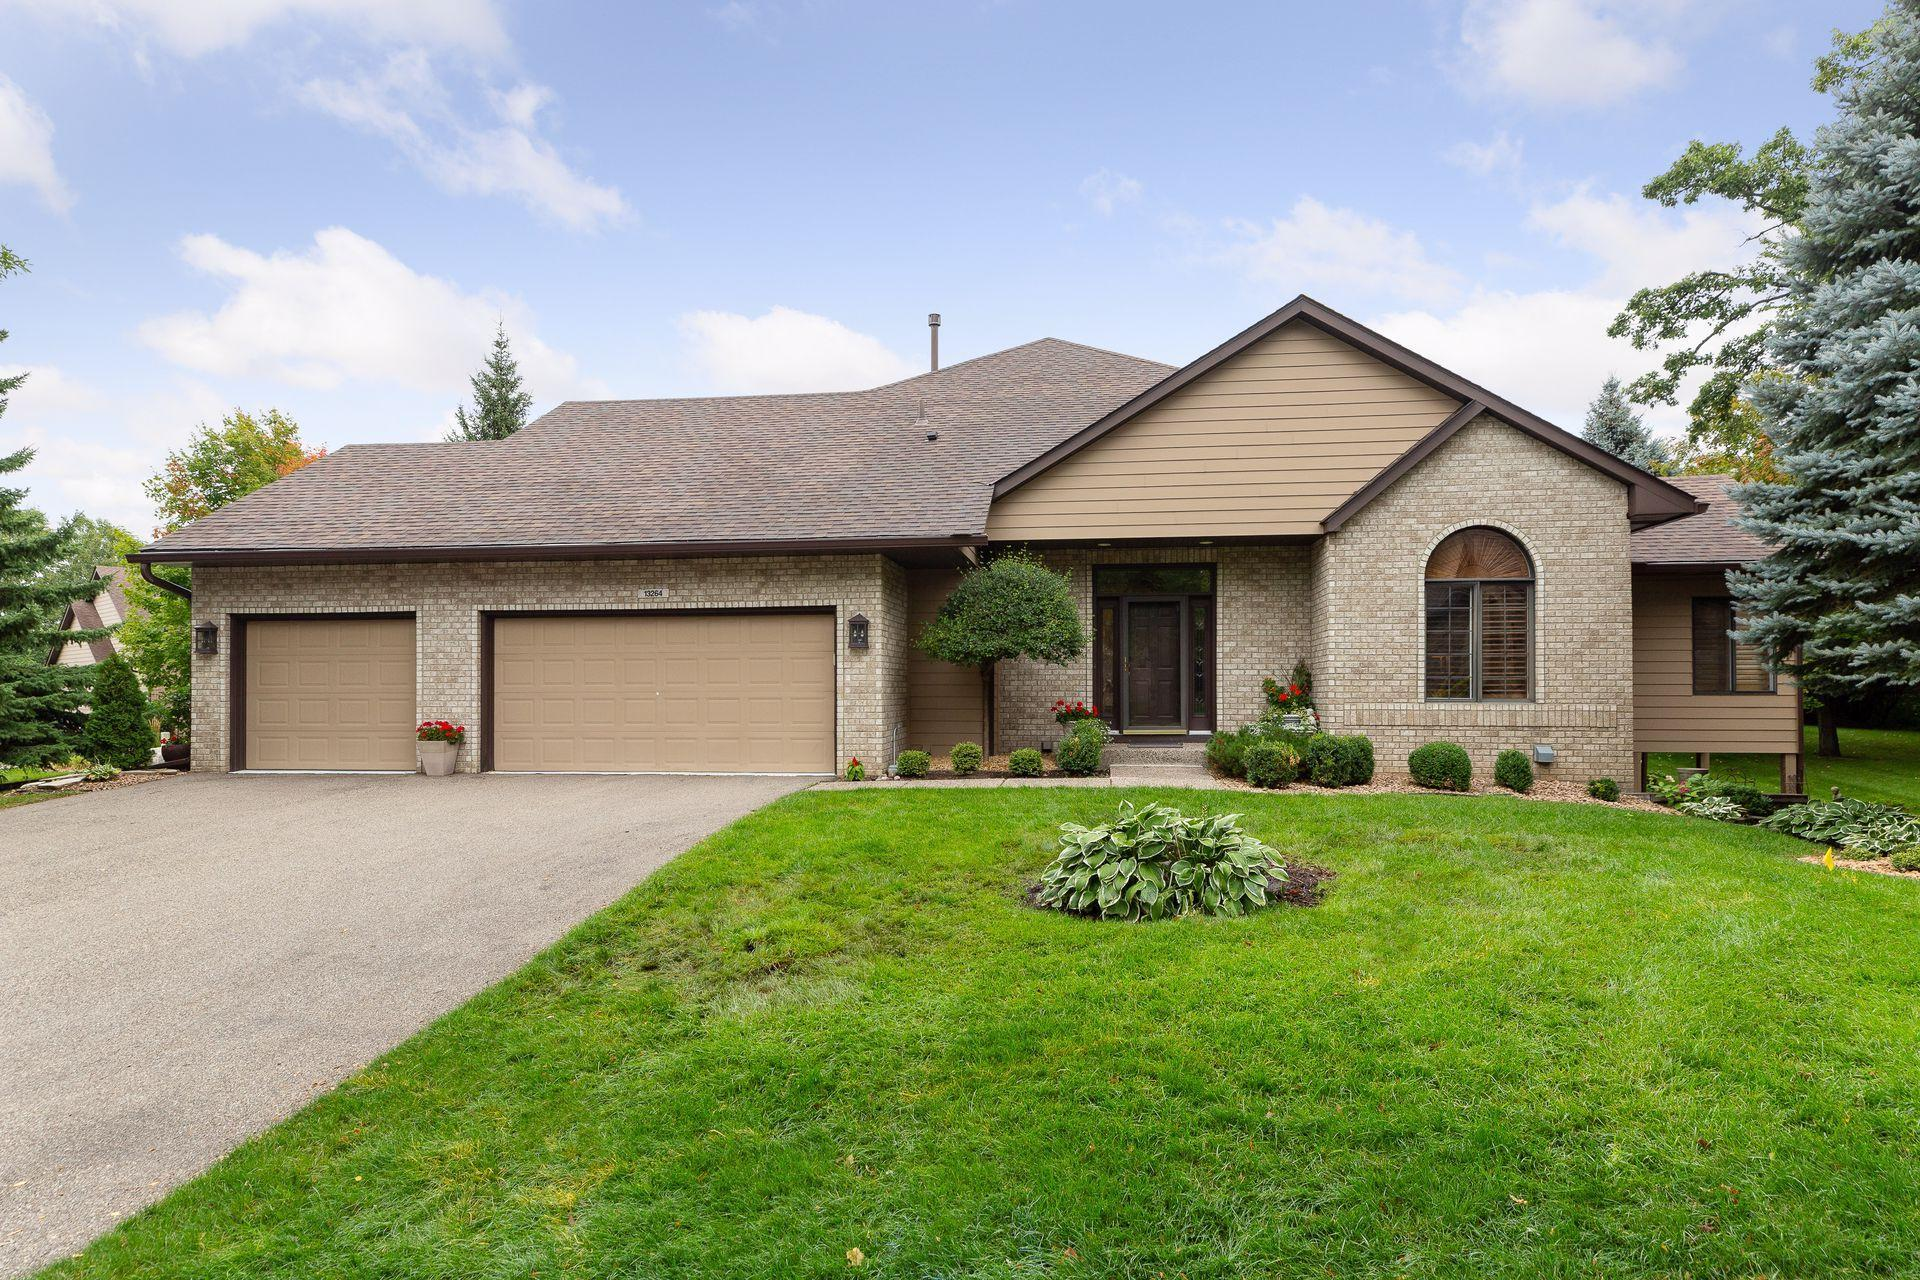 13264 Huntington Terrace Property Photo - Apple Valley, MN real estate listing